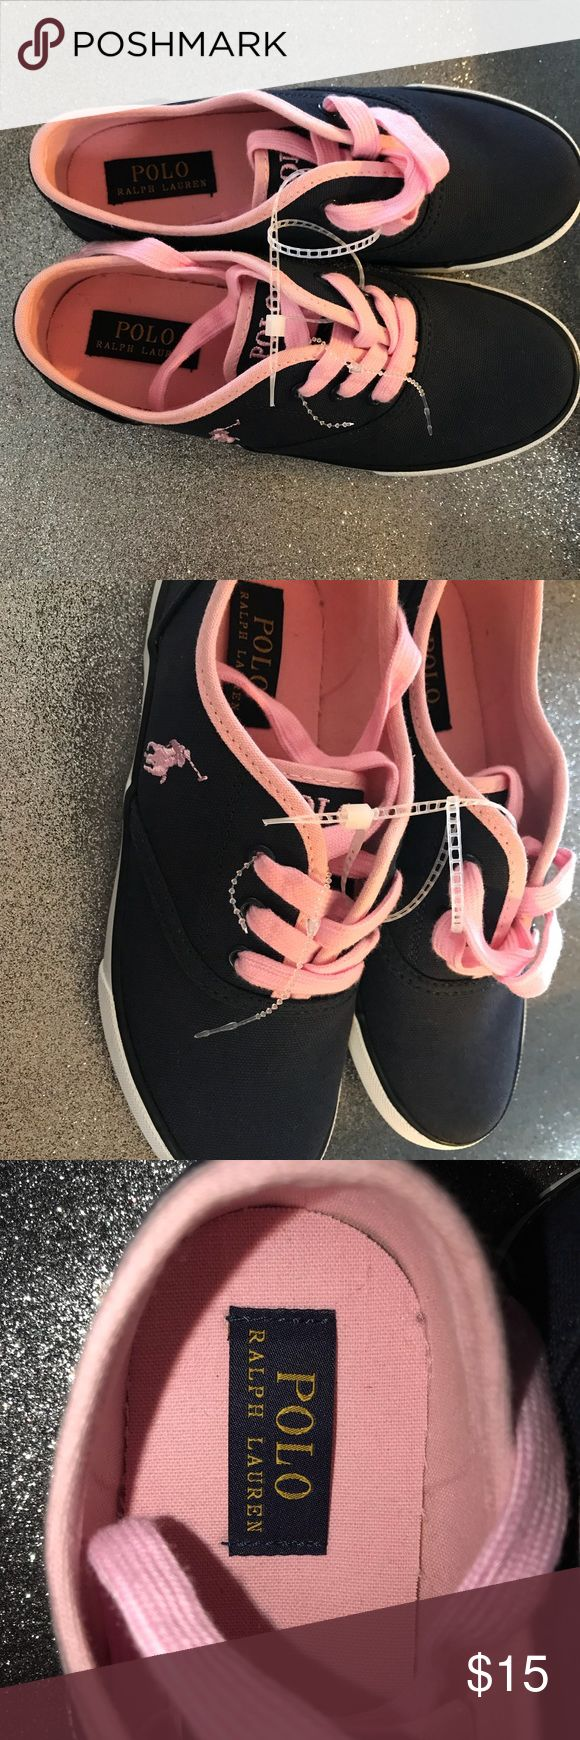 NEW girls Polo Ralph Lauren shoes New navy and pink girls shoes size 3 Polo by Ralph Lauren Shoes Sneakers